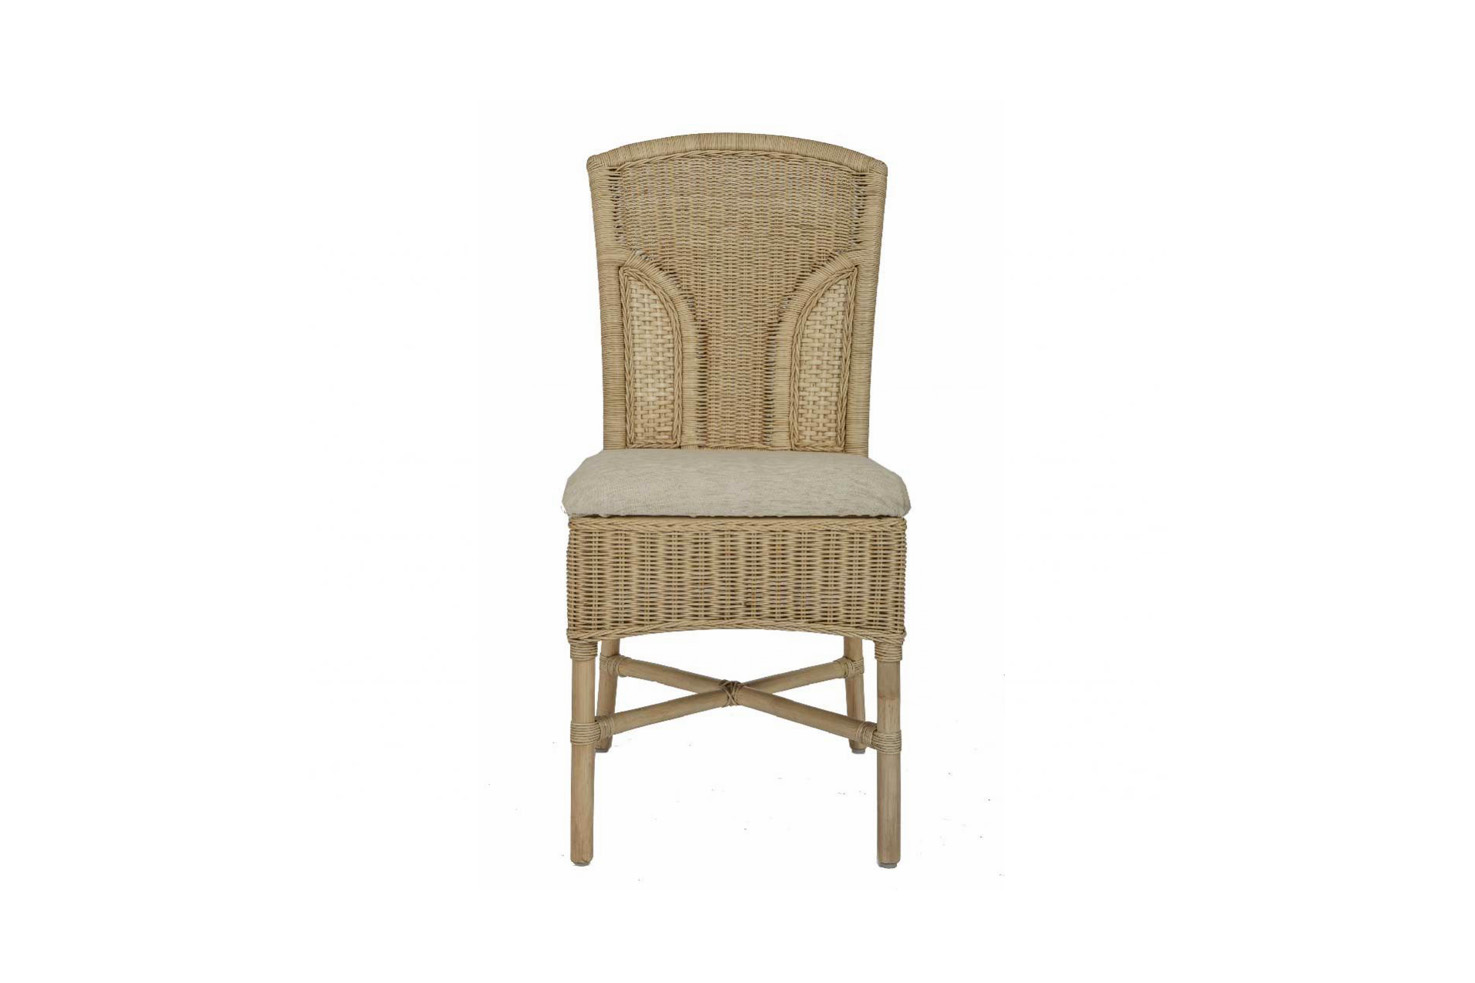 Brook Wicker Cane Rattan Conservatory Furniture Dining Chair